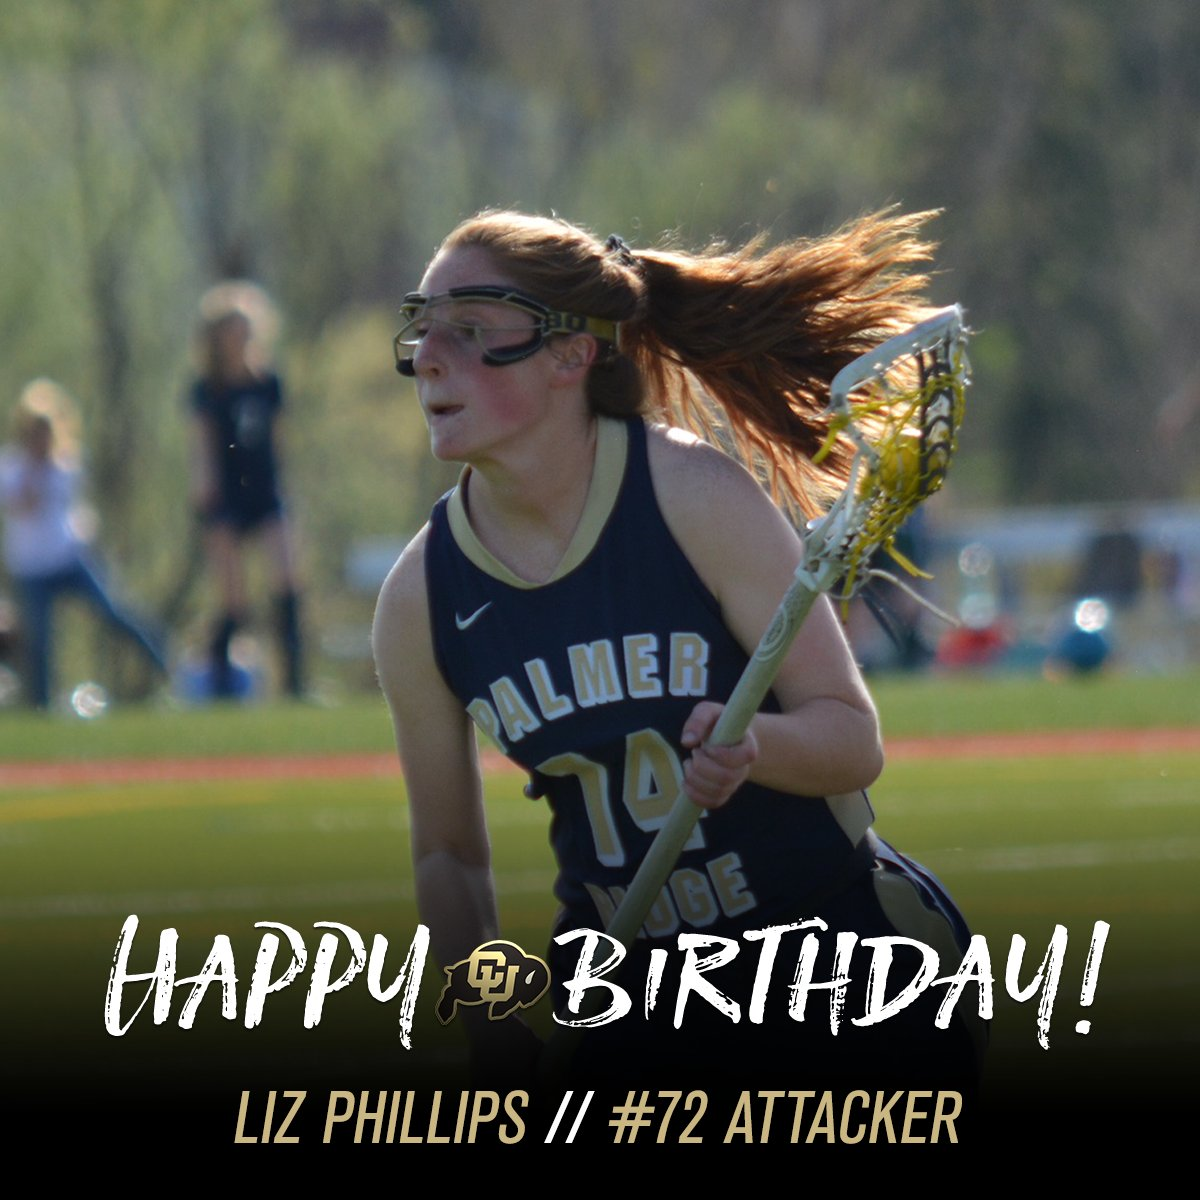 Happy birthday Liz! We hope you have a wonderful day!